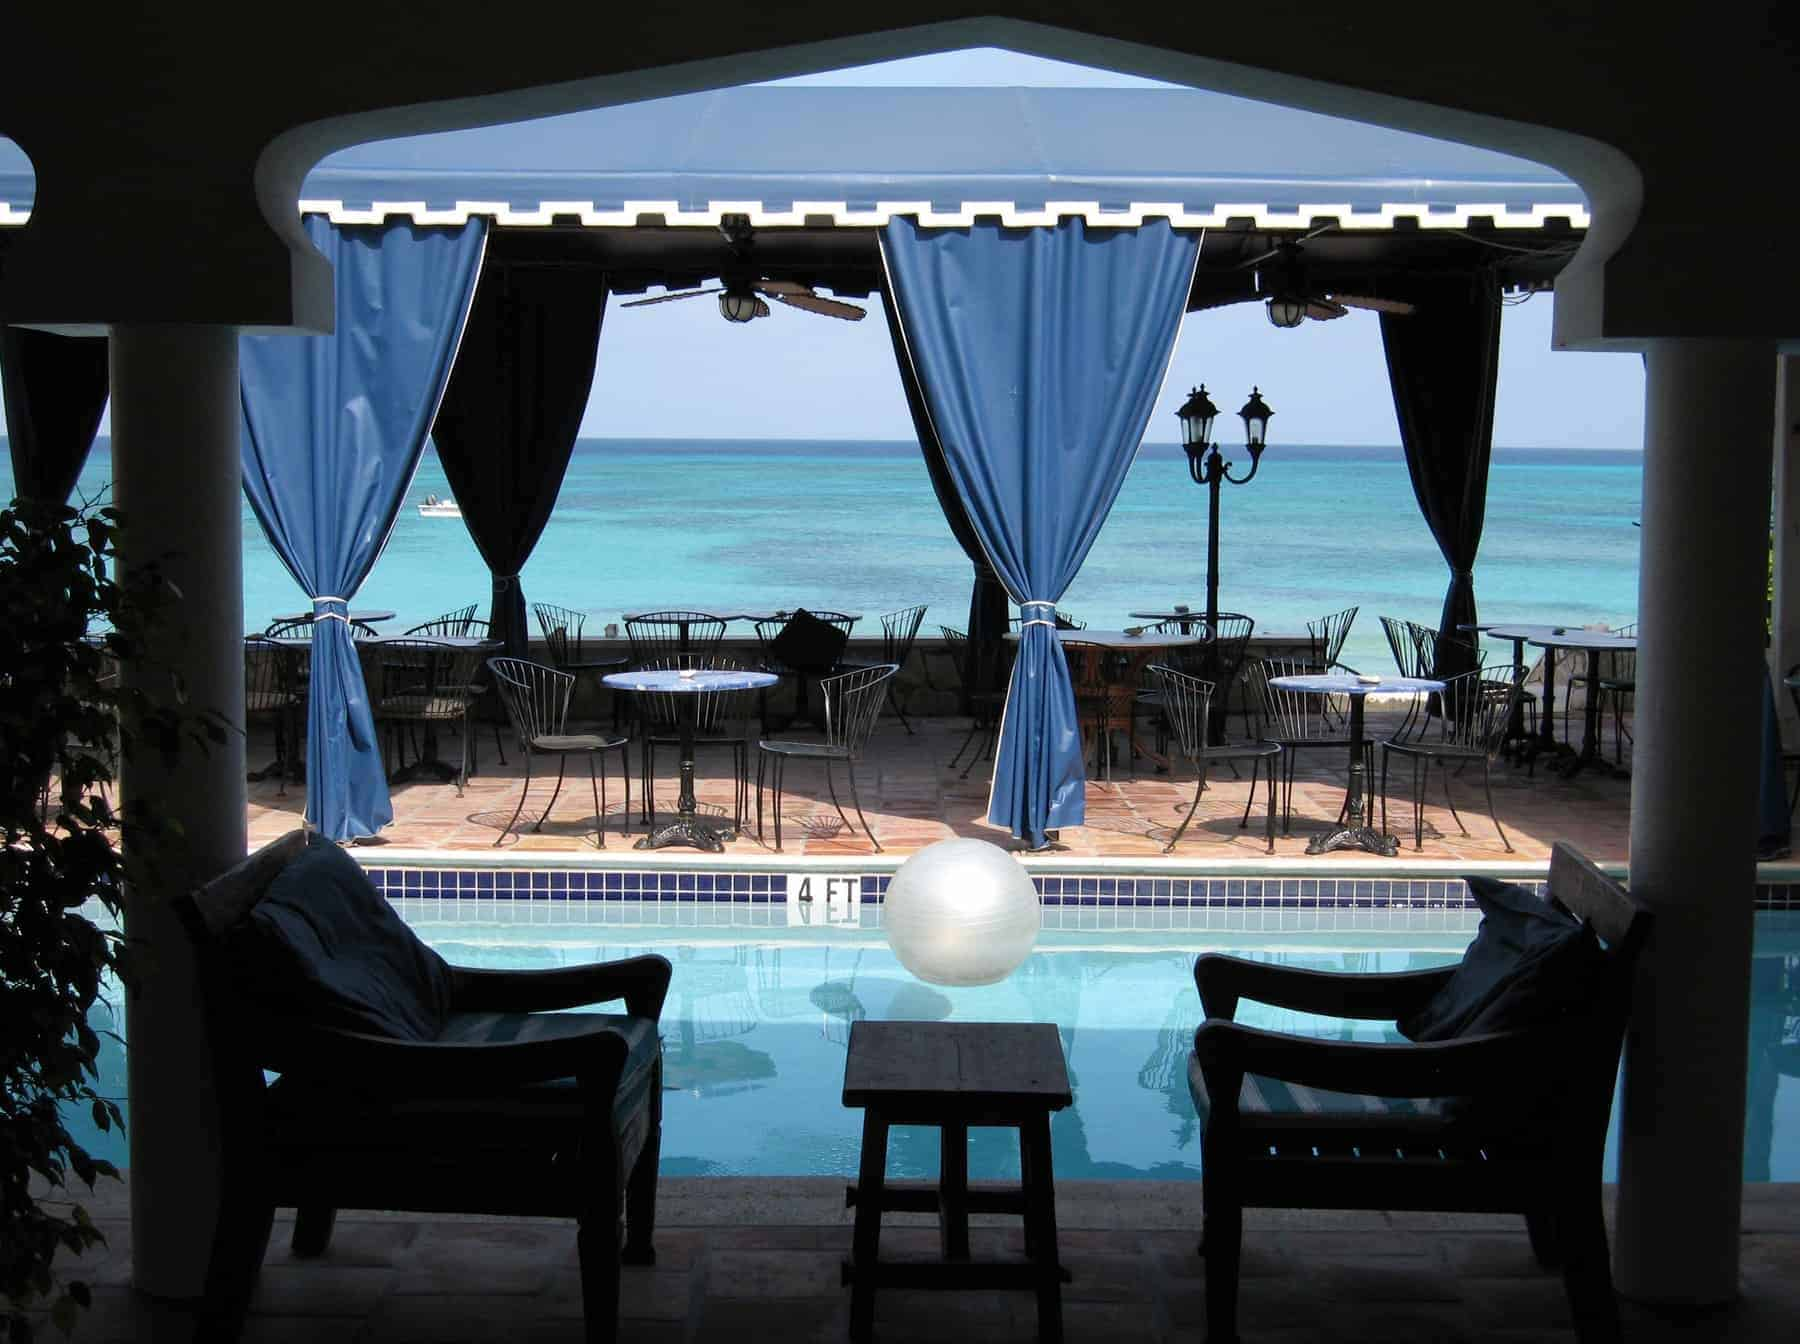 Open foyer of a hotel on grand turk, turks & caicos, overlooking the carribean sea;